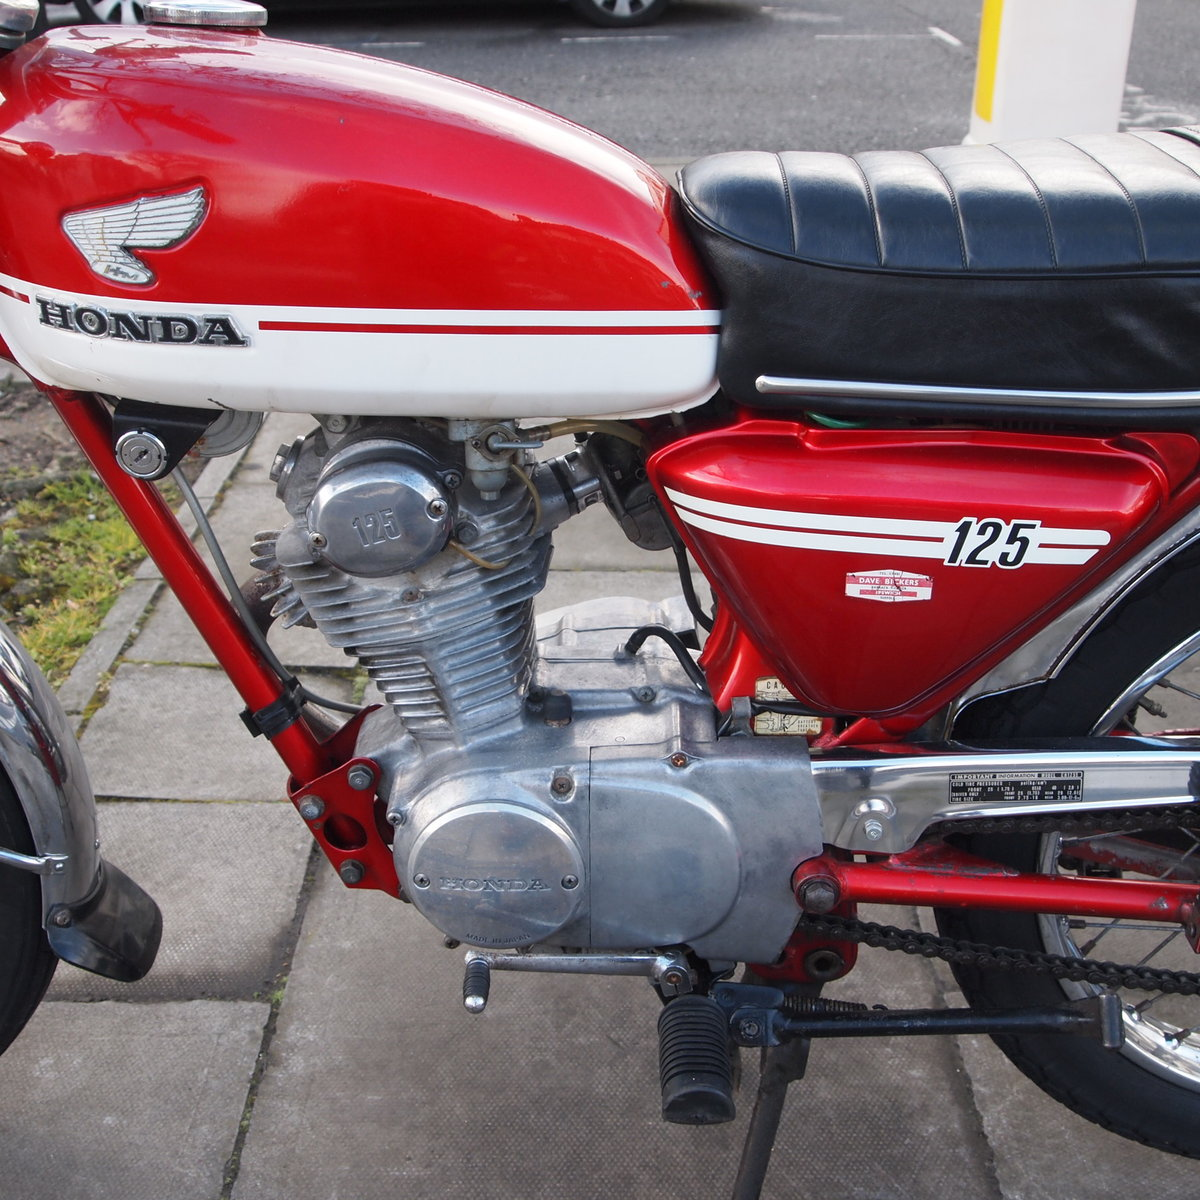 1973 CB125 S Ready To Ride, All Original, SOLD TO LAINYA. SOLD (picture 6 of 6)